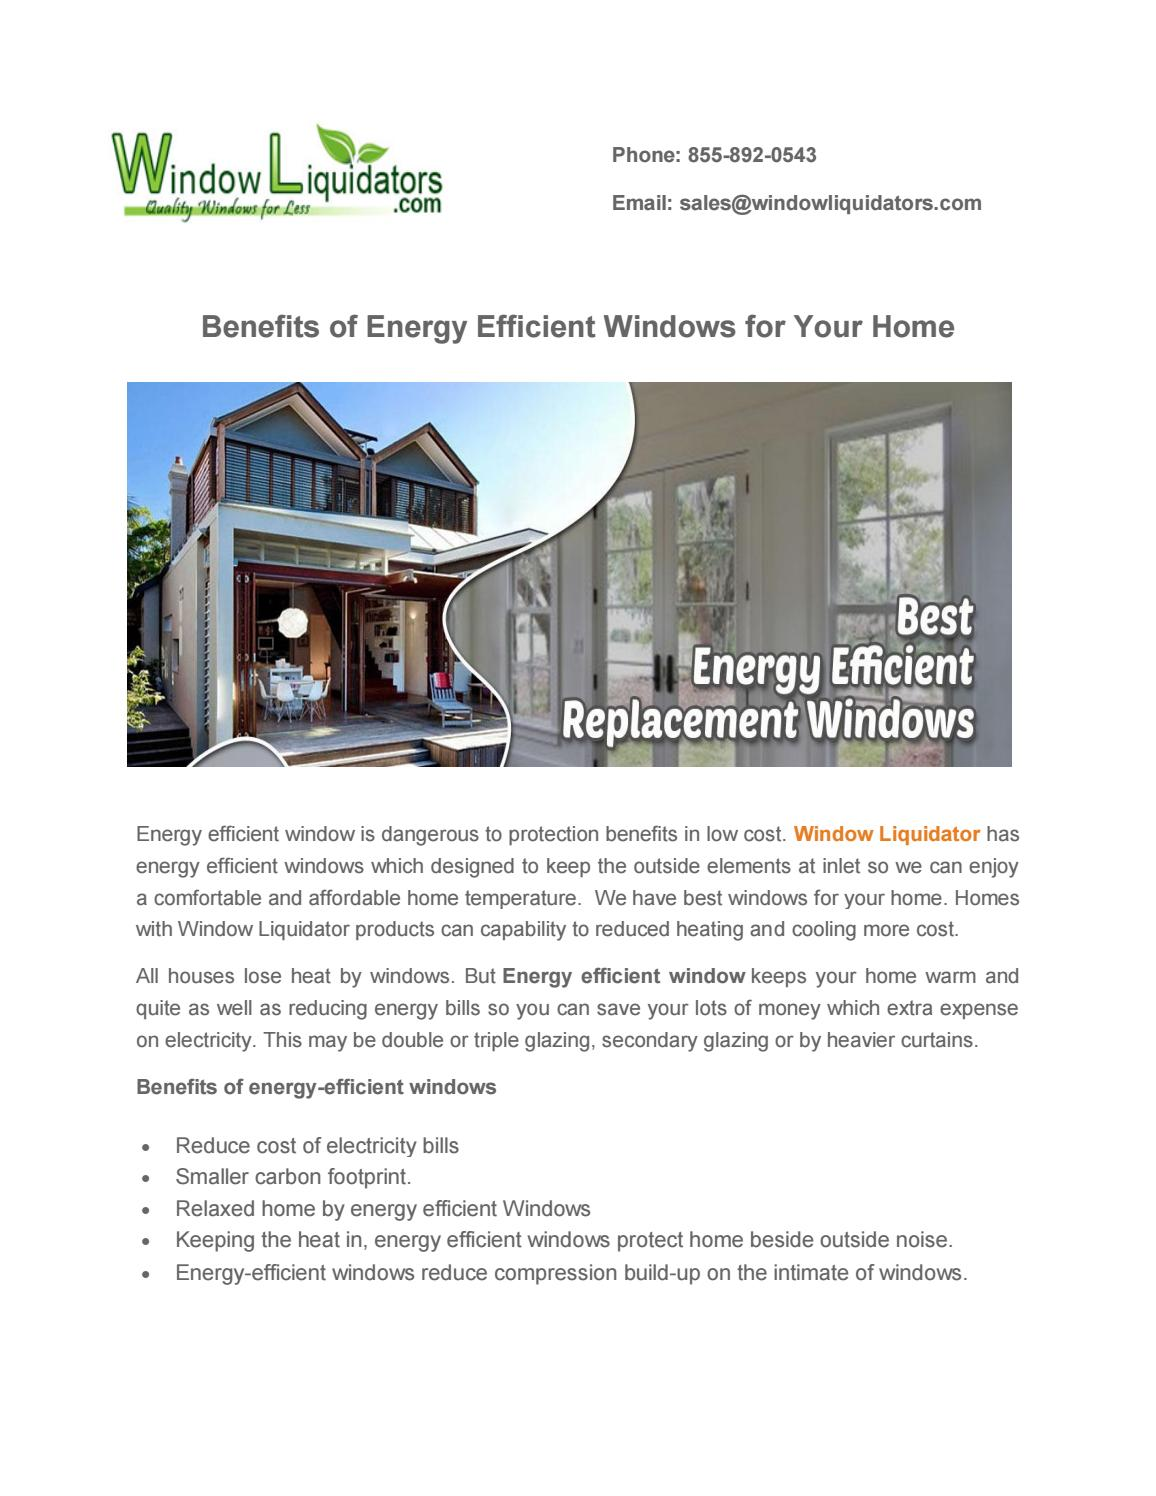 Benefits Of Energy Efficient Windows For Your Home By